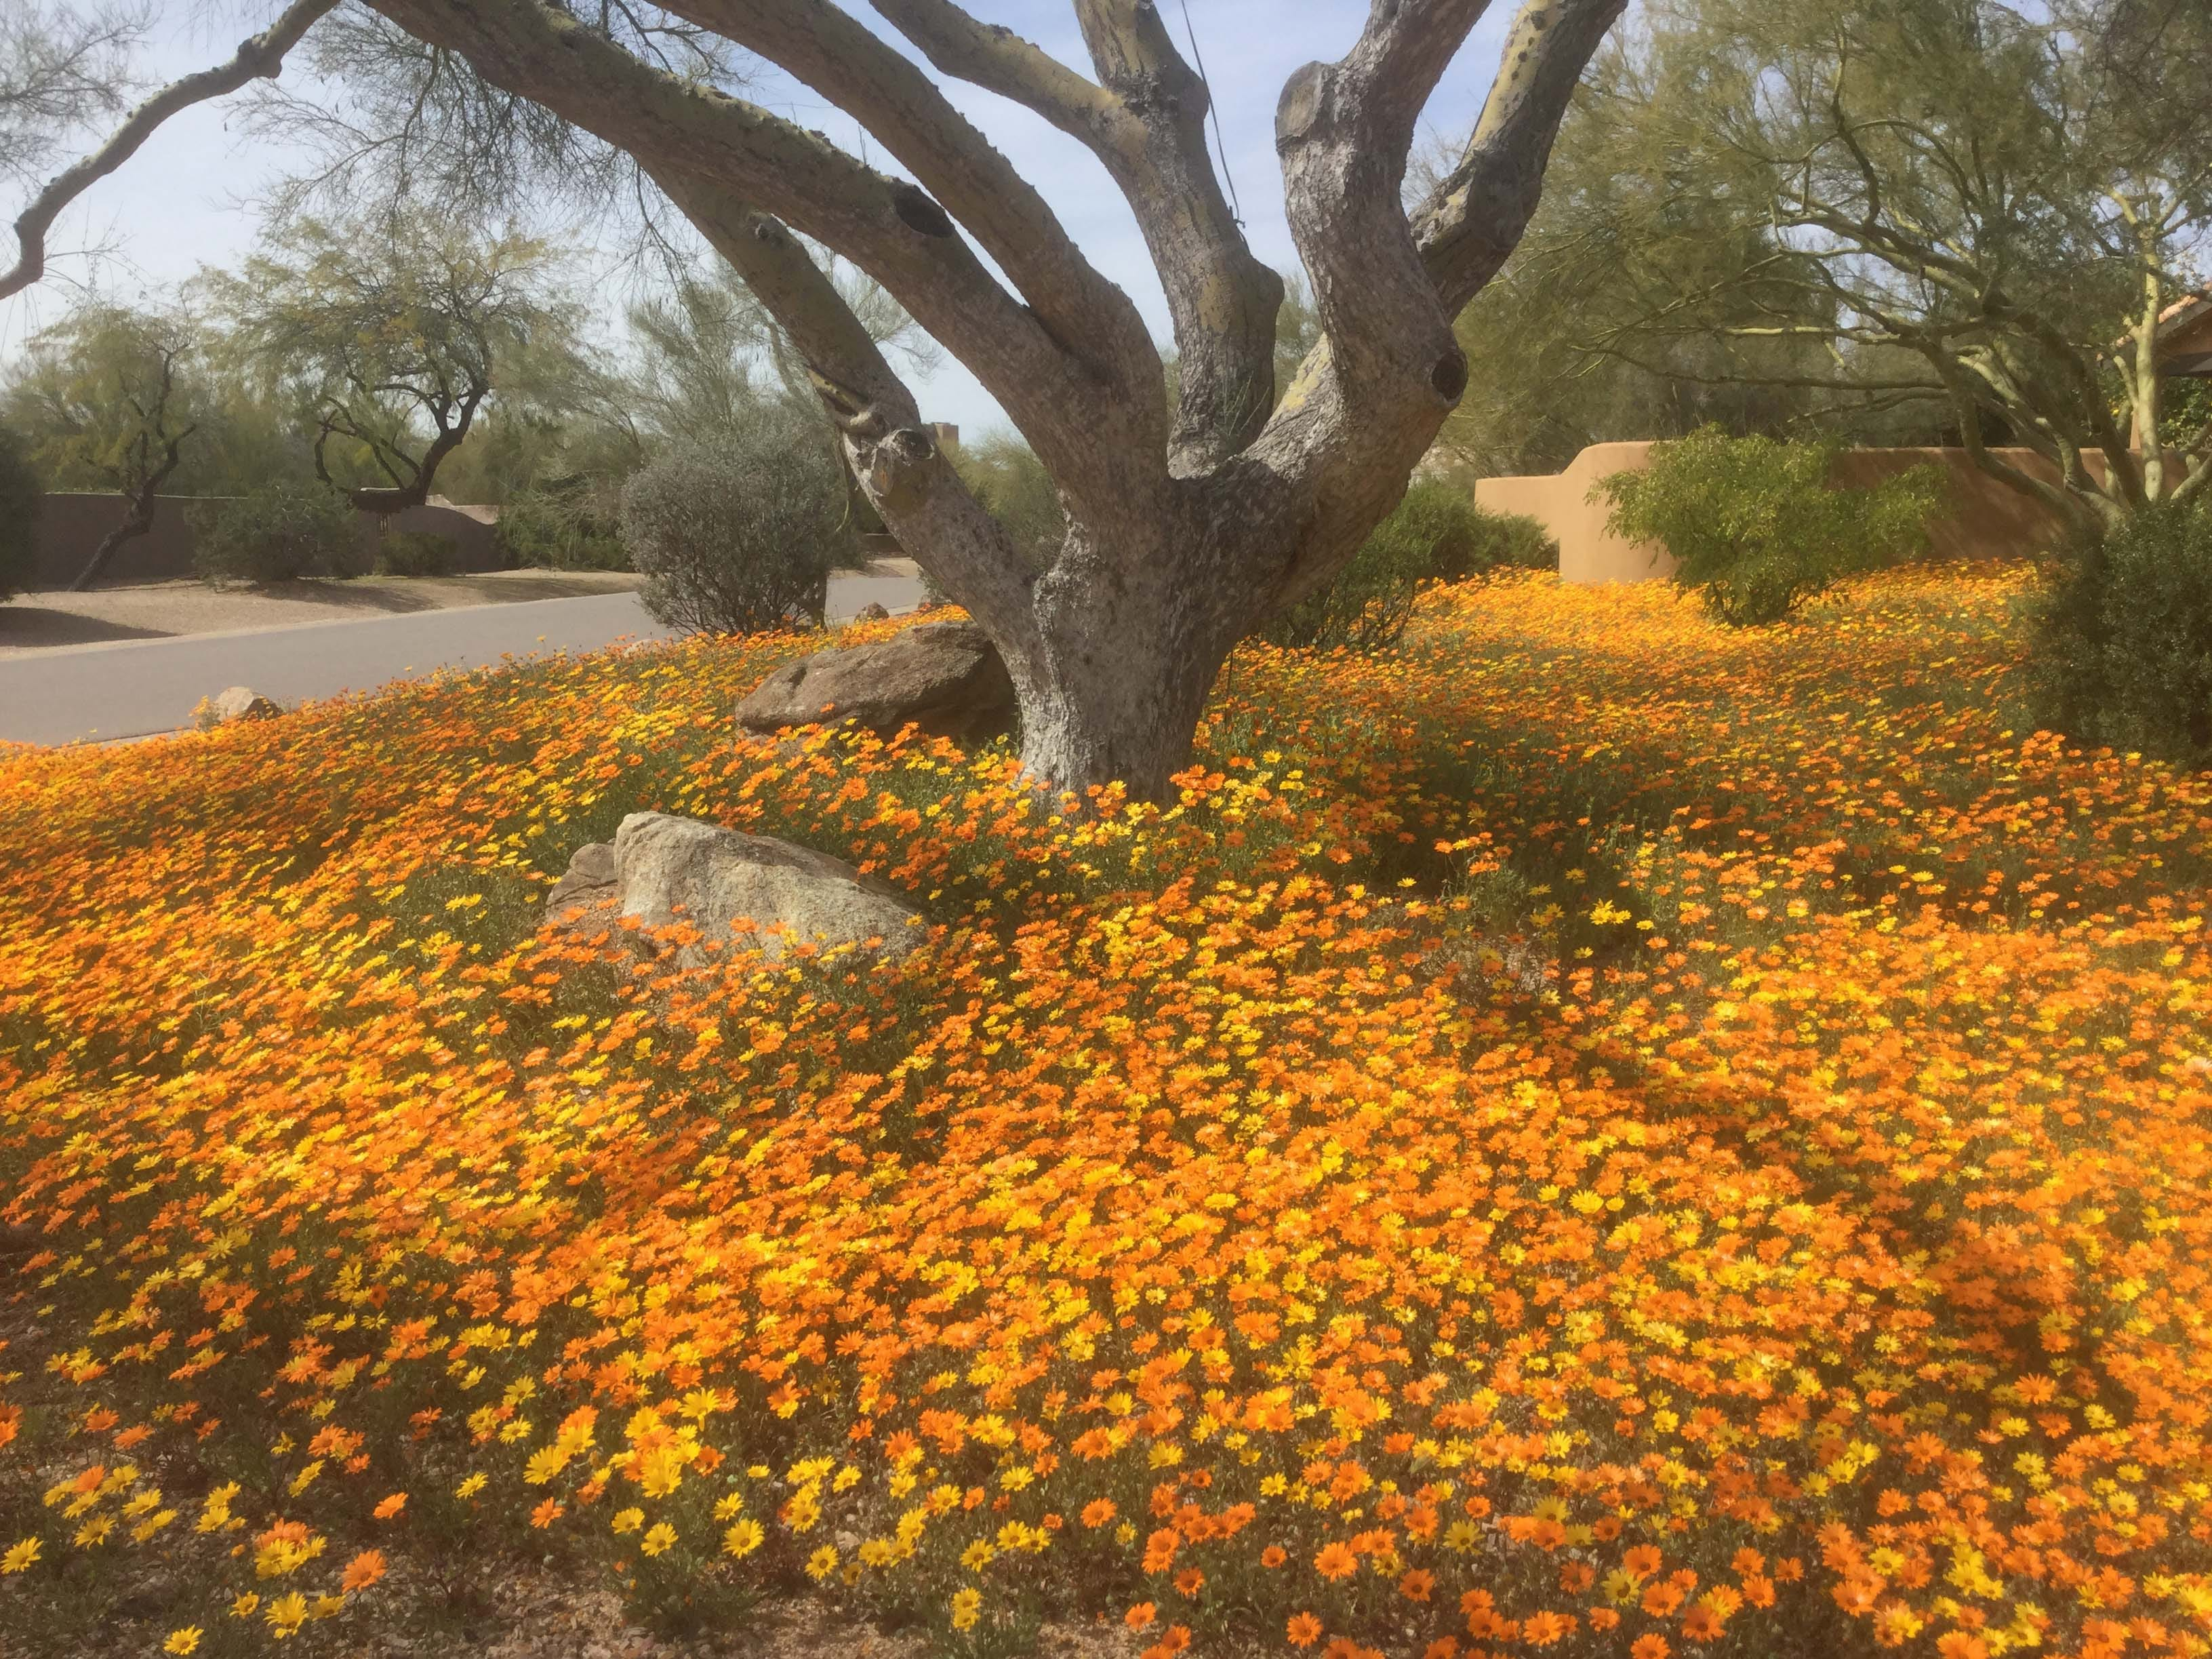 I hope you like my photo of our desert daisies. Twenty five  years in the making with lots of rain, cool weather, and 80 pounds of fertilizer.